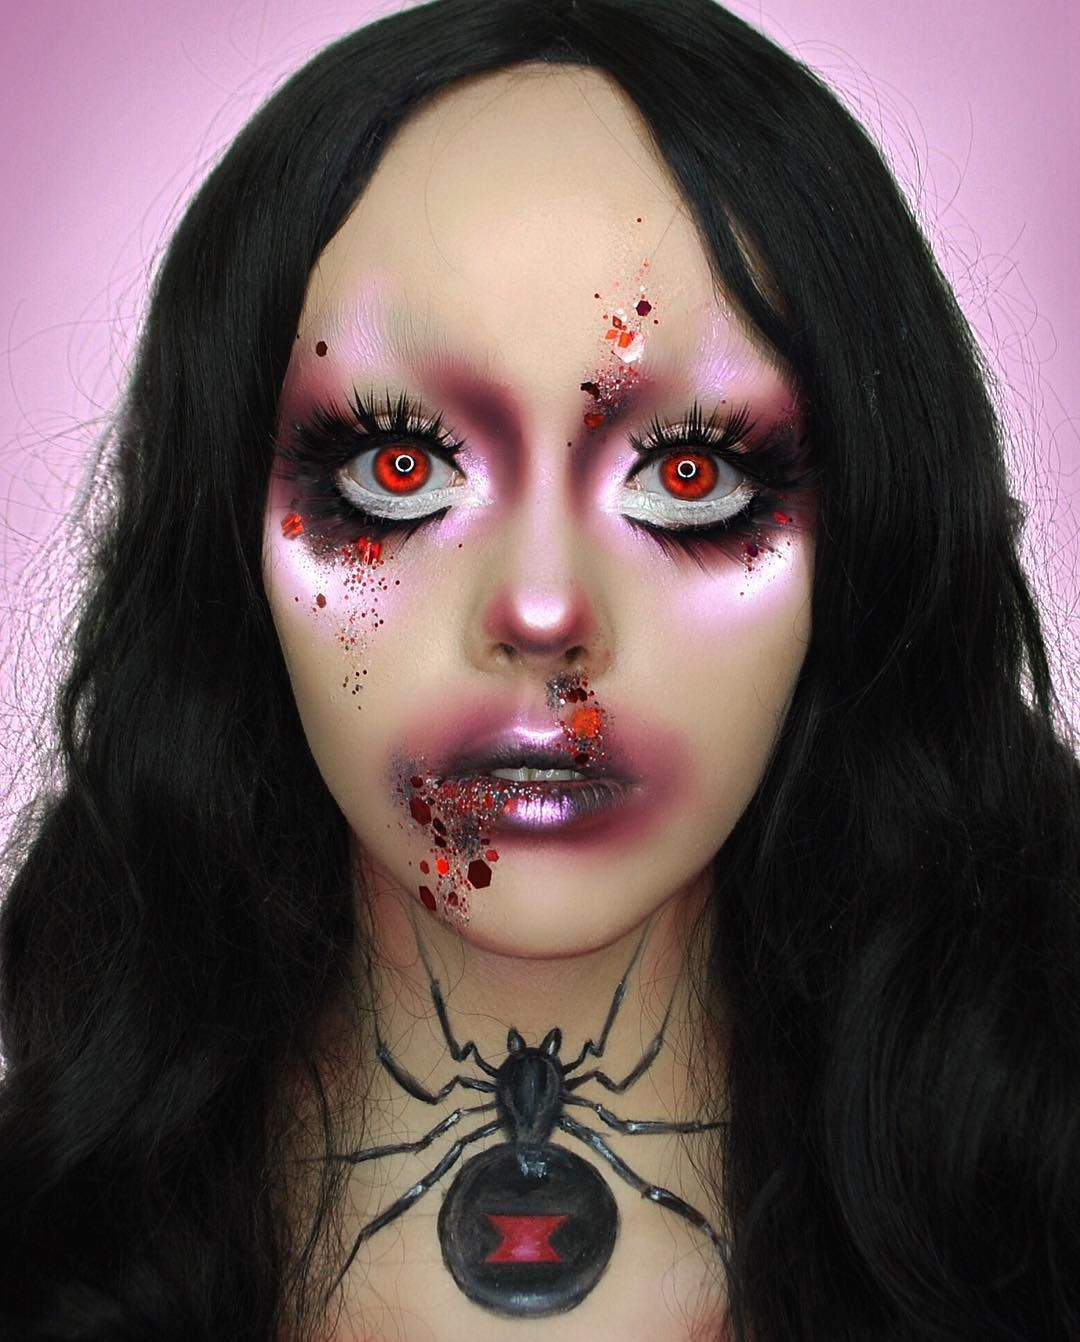 Here's another of this creepy black widow look from the